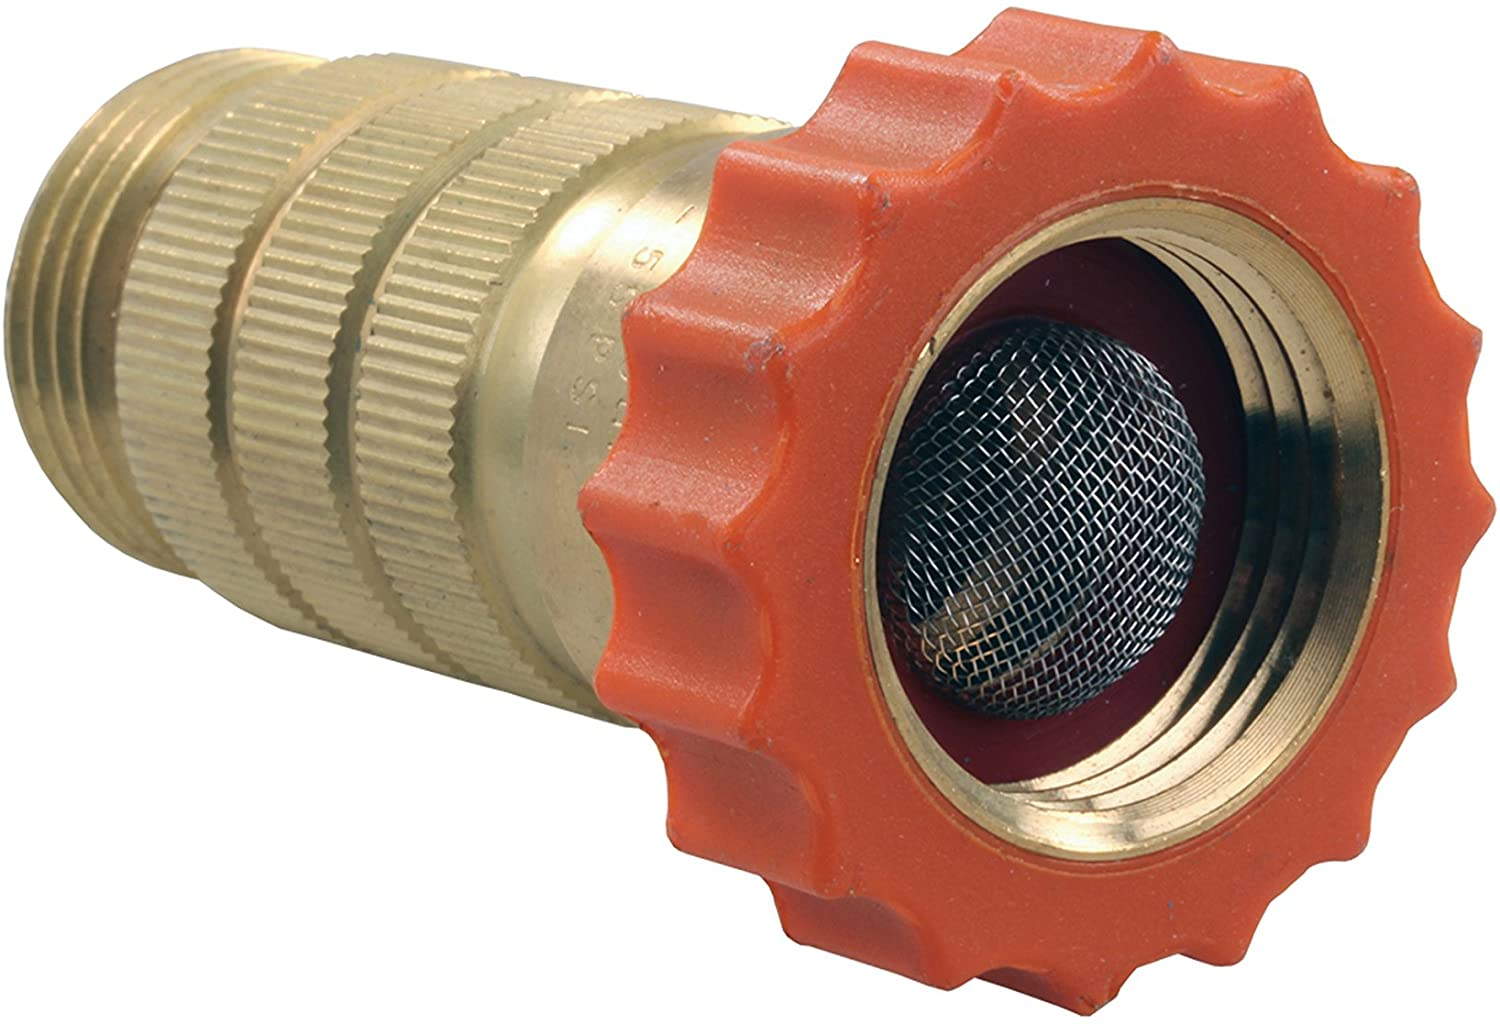 JR Products 62205 Water Regulator - 40-50 psi